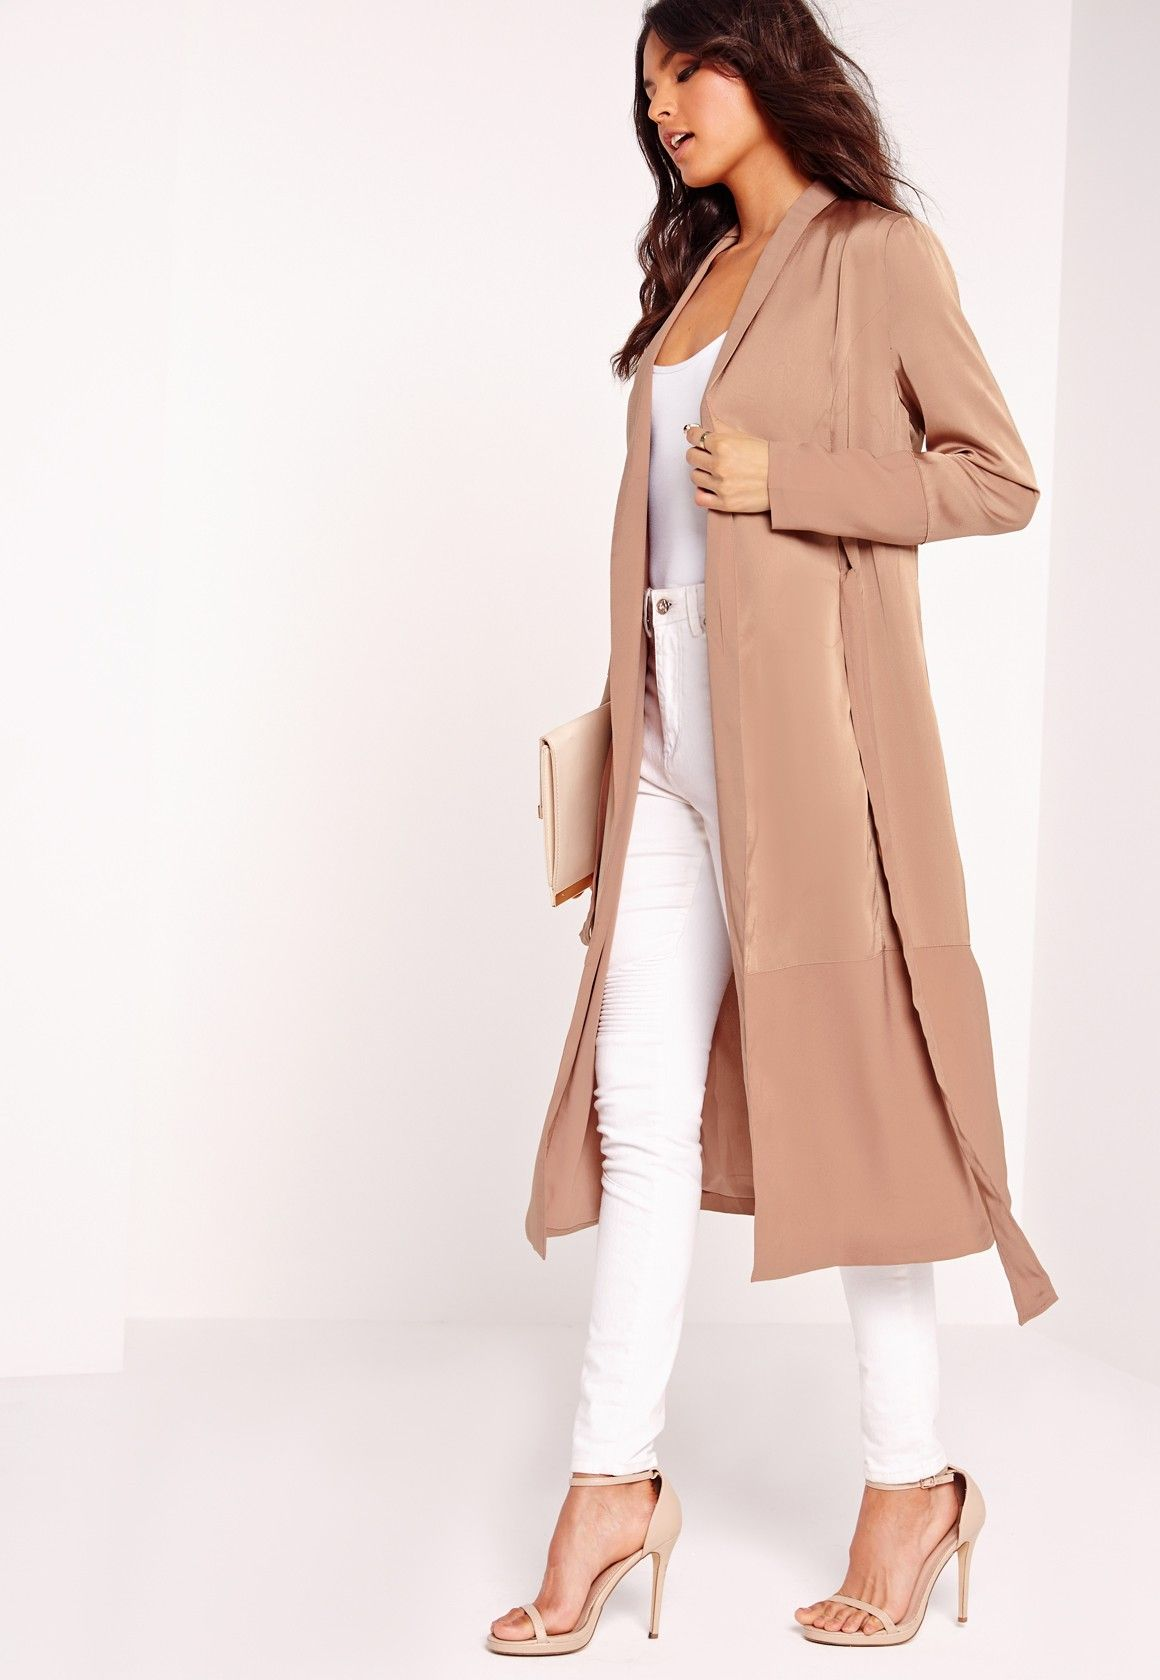 Missguided - Petite Two Tone Satin Duster Jacket Camel | Style ...